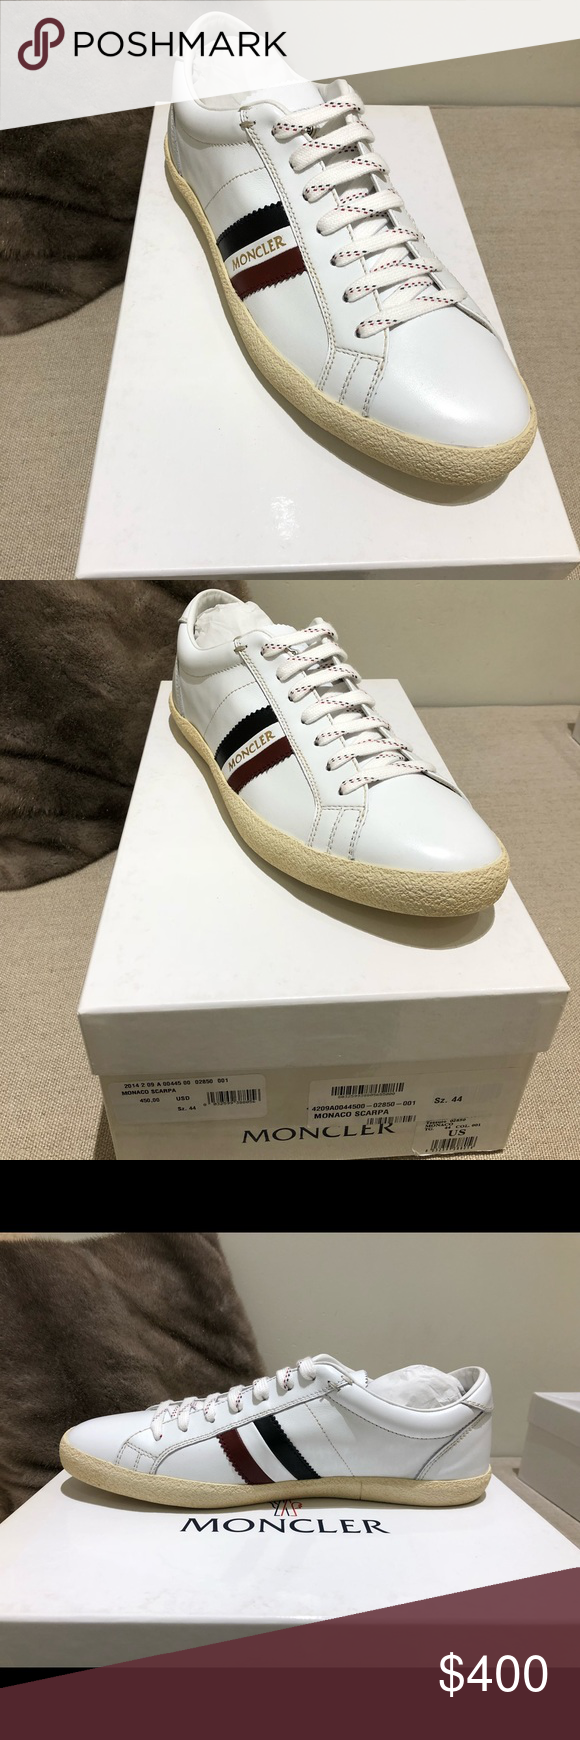 98665cf9389 AUTHENTIC Moncler Men's sneakers(Monaco Scarpa) genuine leather in white  Size: 44. They are Deadstock have never been worn or tried on!!